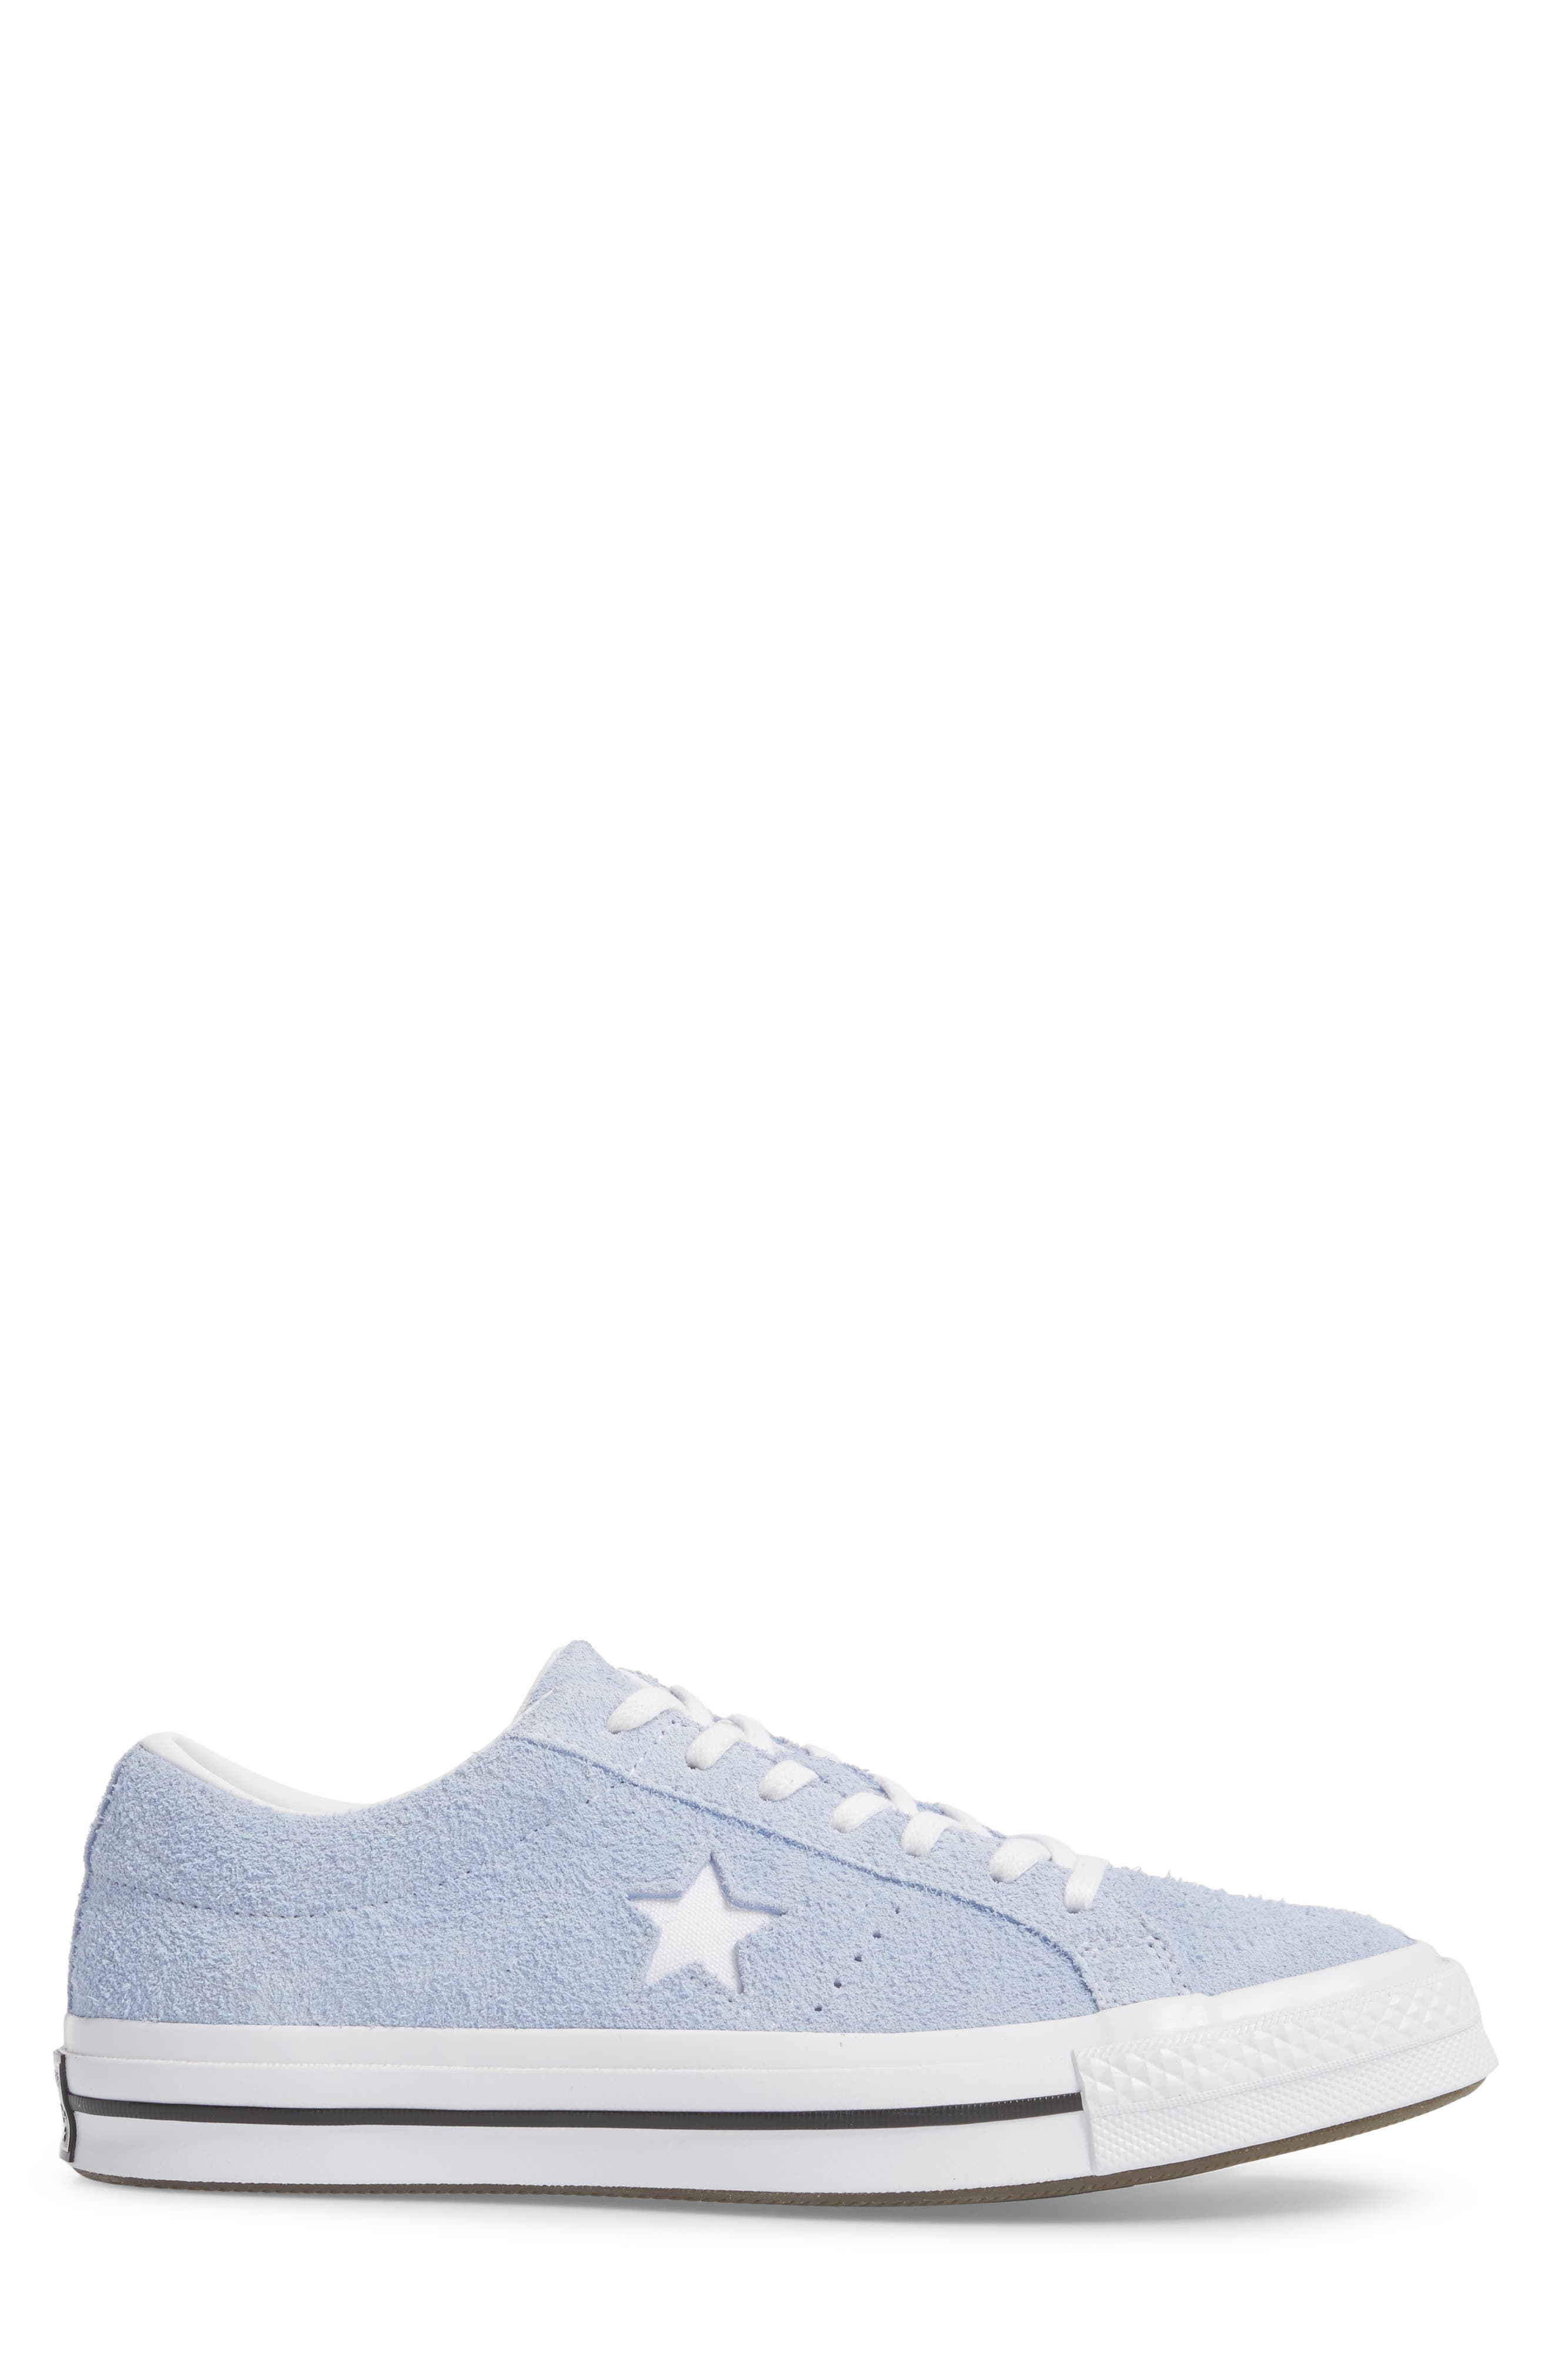 One Star Sneaker,                             Alternate thumbnail 3, color,                             Blue Chill Suede